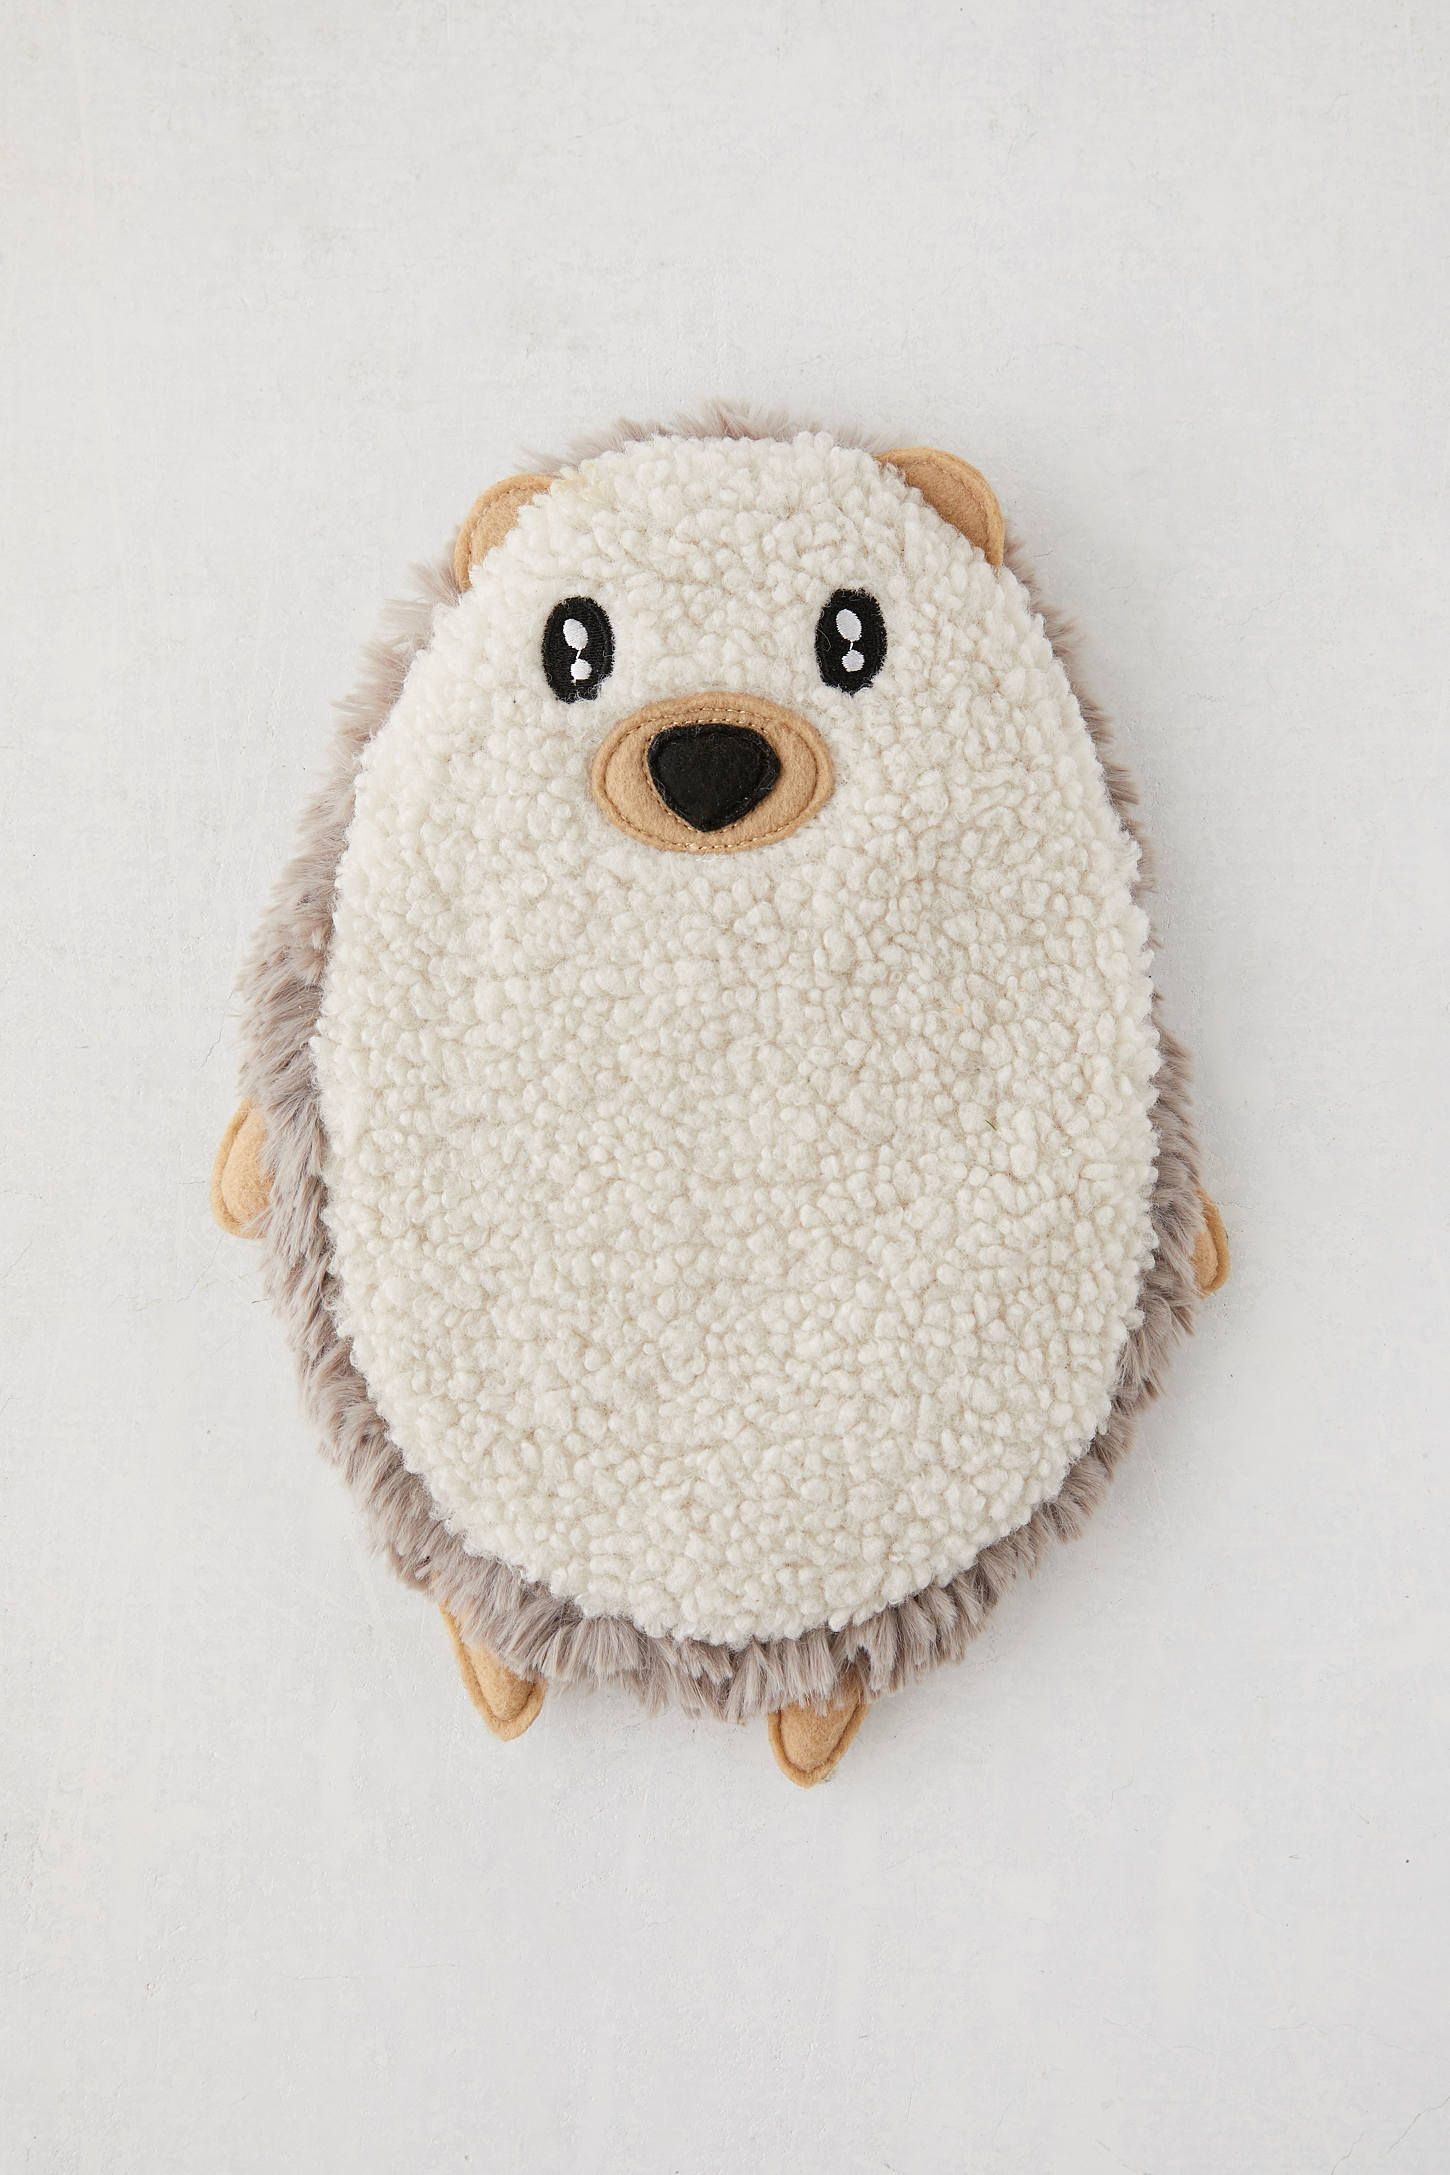 Huggable Hedgehog Cooling Heating Pad Heating And Cooling